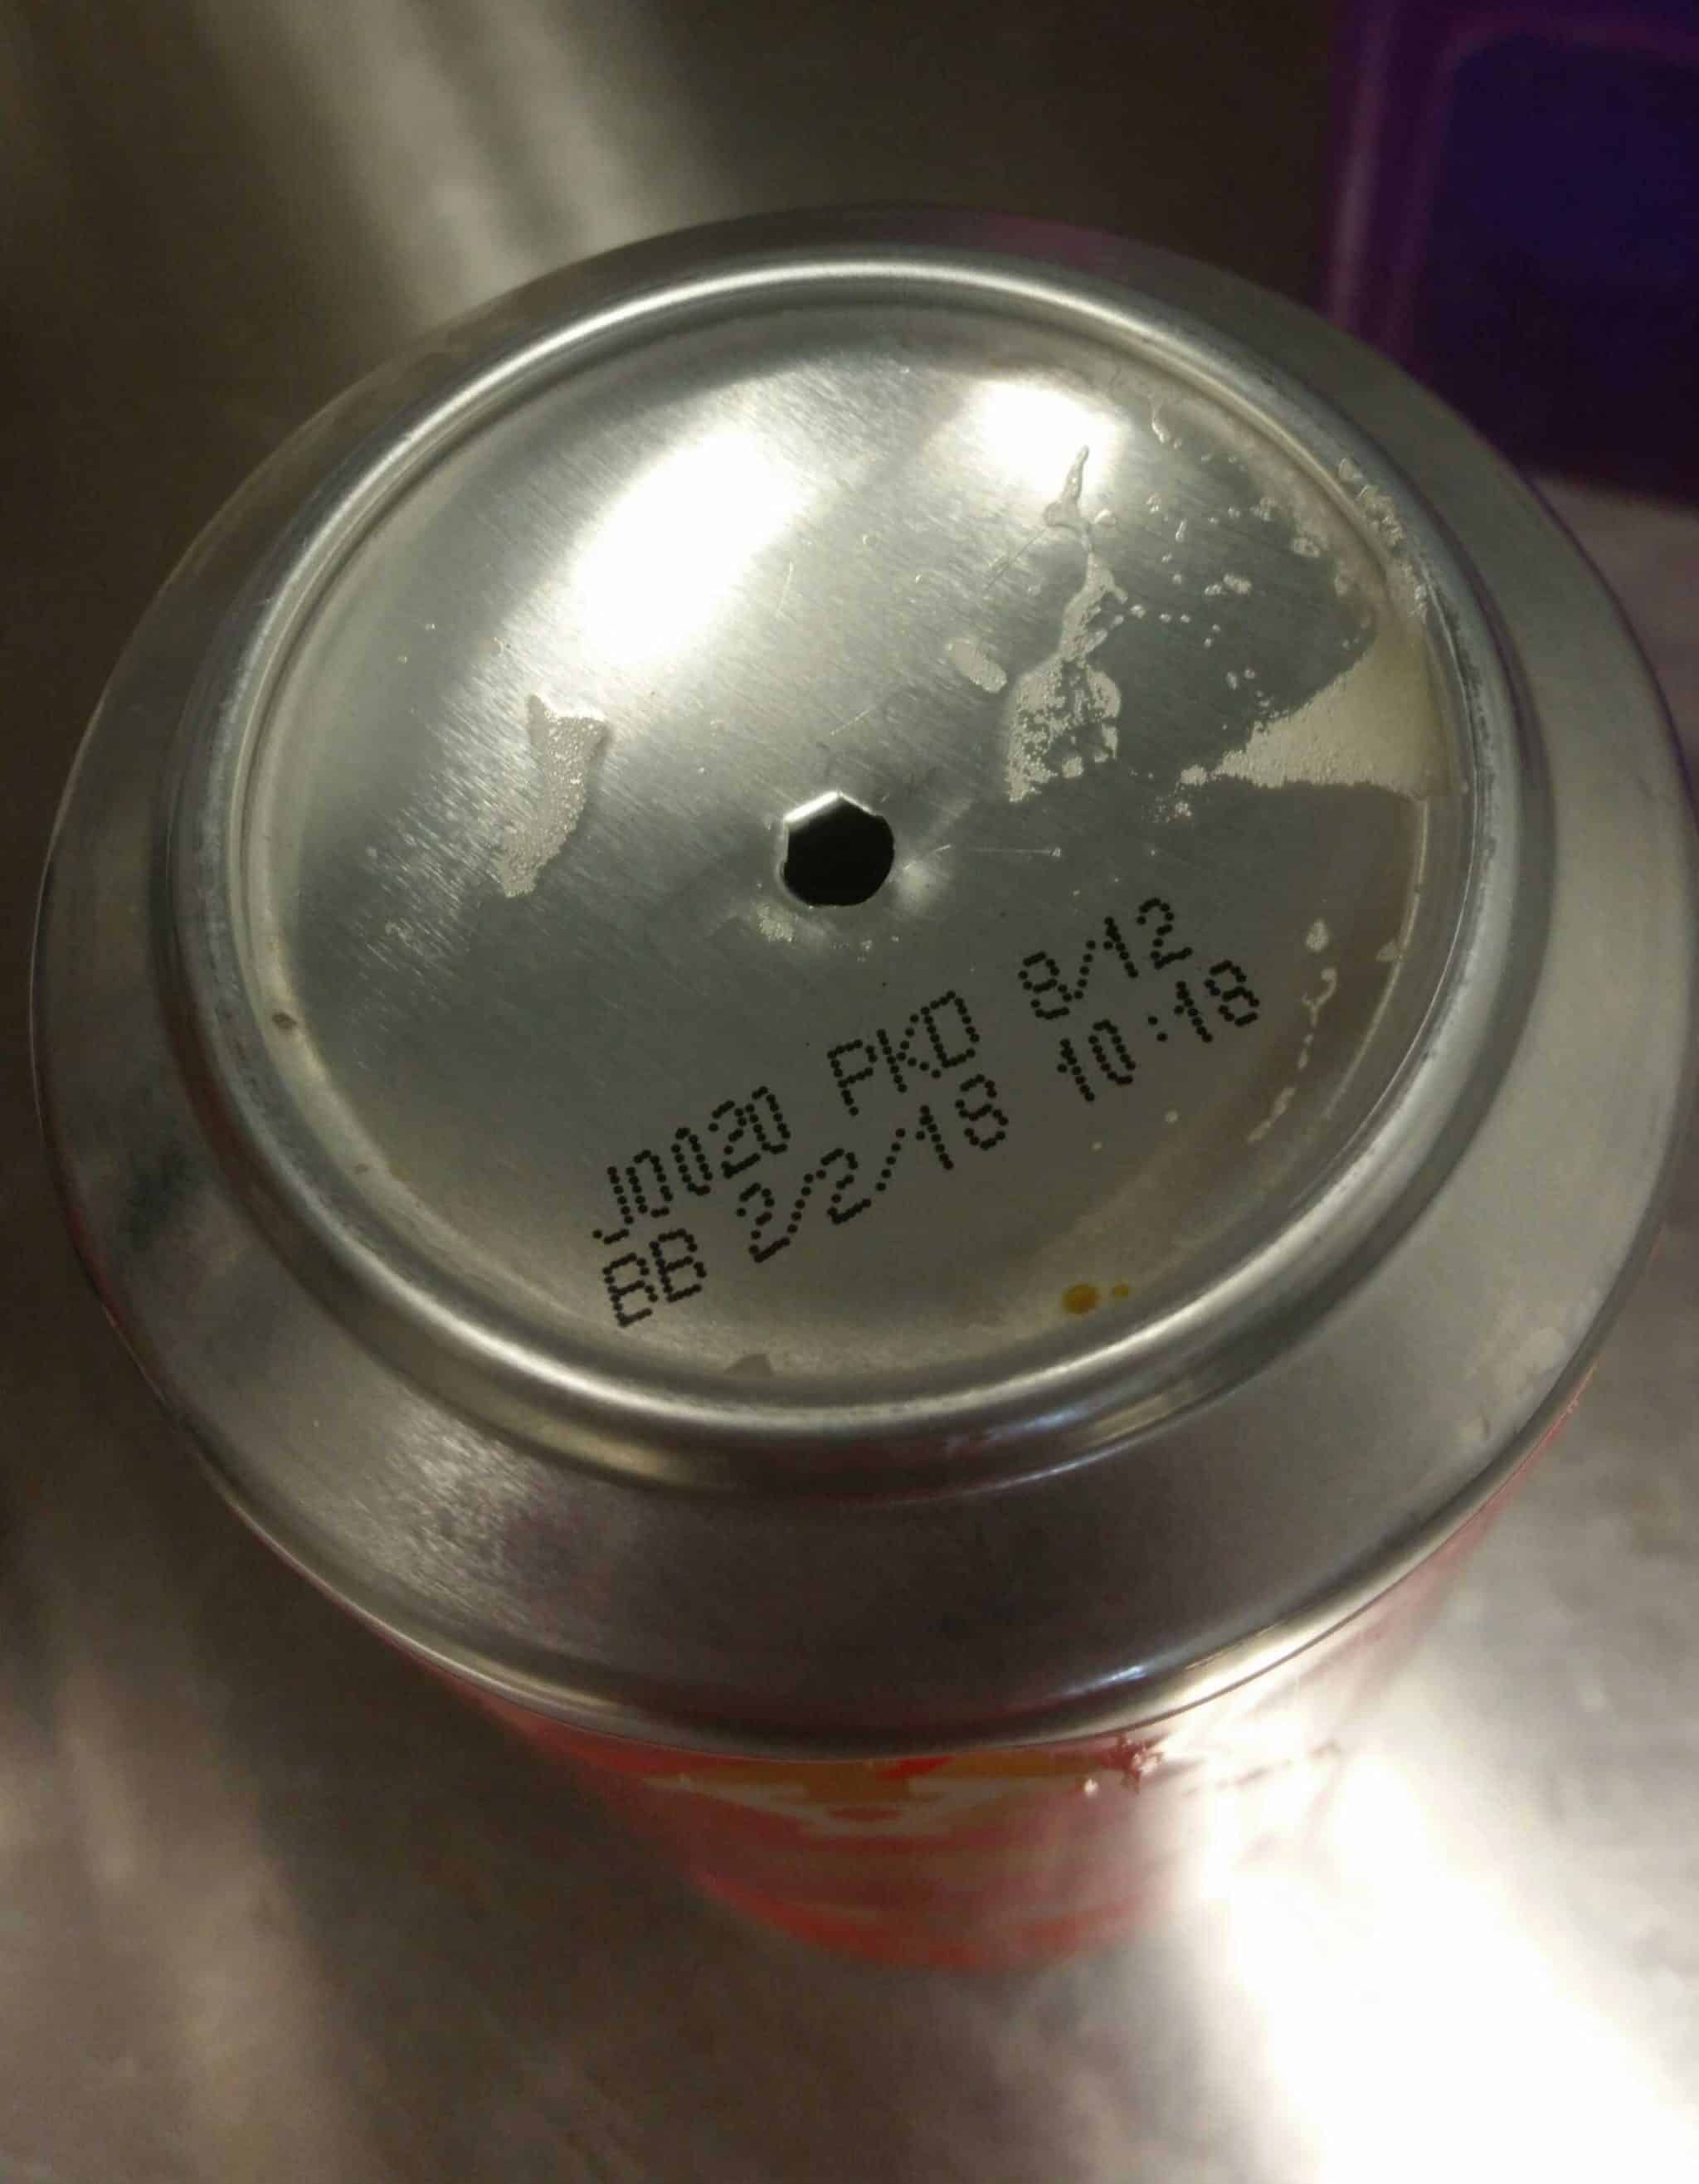 Codes app date beer Chihuahua Cerveza